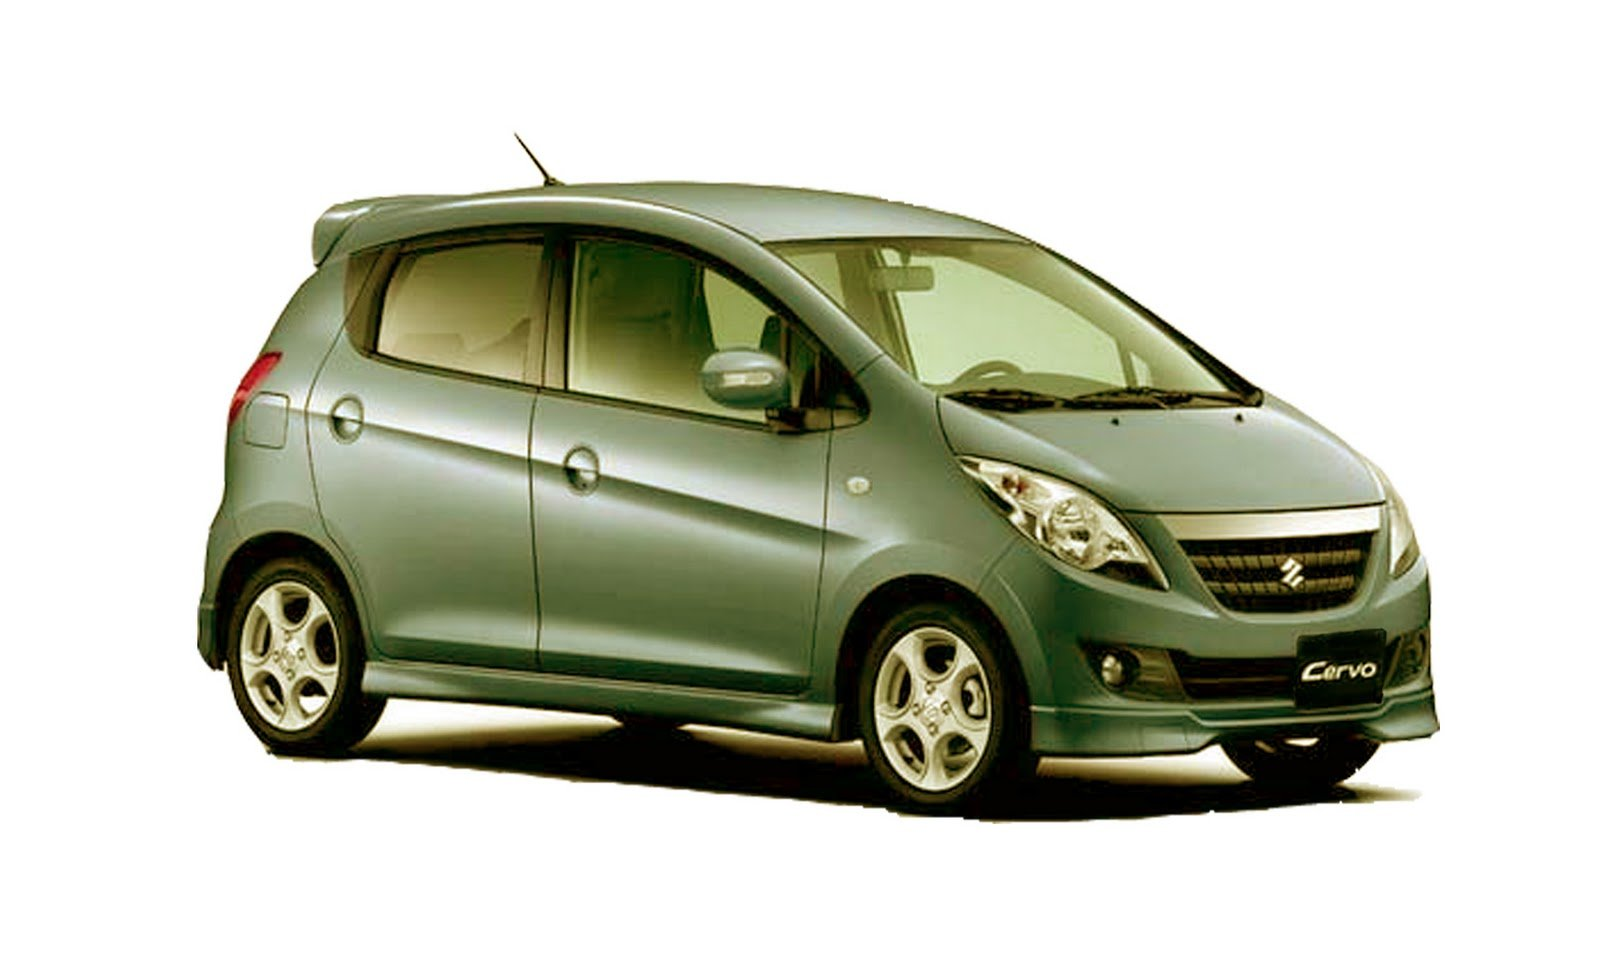 Latest Maruti Cervo Car Details Cervo Specs Price Mileage And Free Download